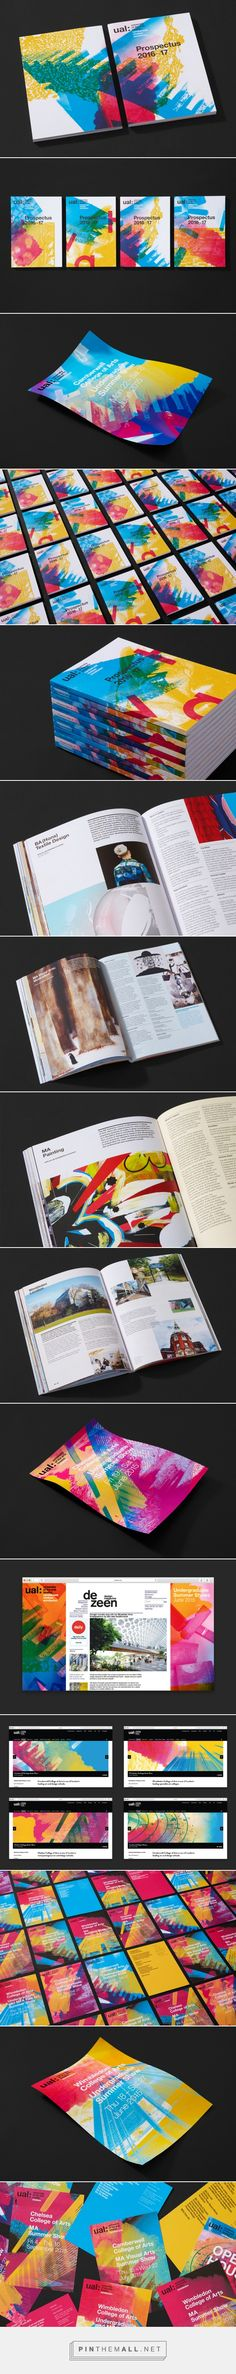 UAL 2015 Campaign by Spy — BP&O - created via http://pinthemall.net